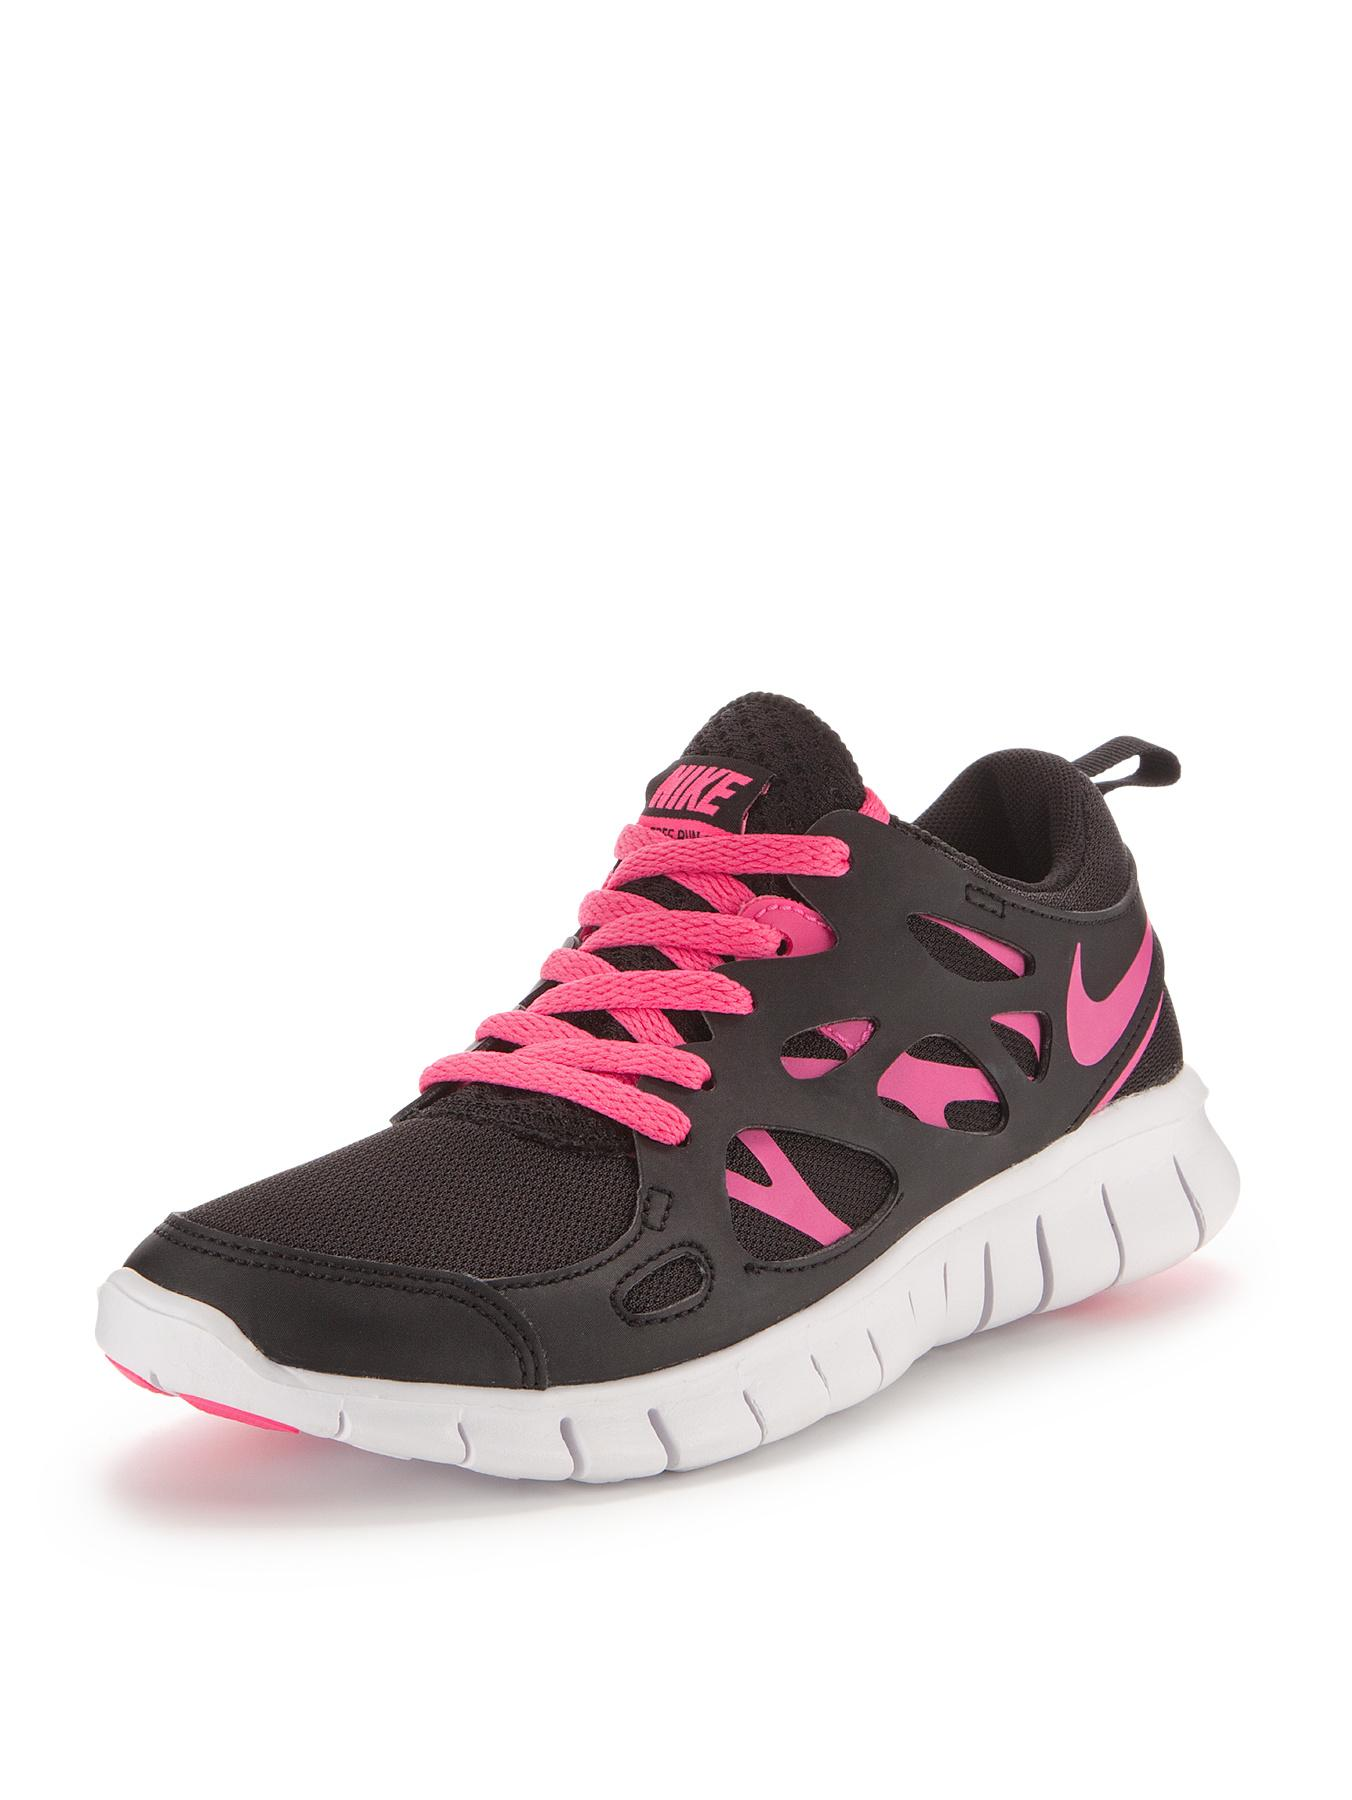 Nike FREE Run 2 Junior Trainers - Black, Black